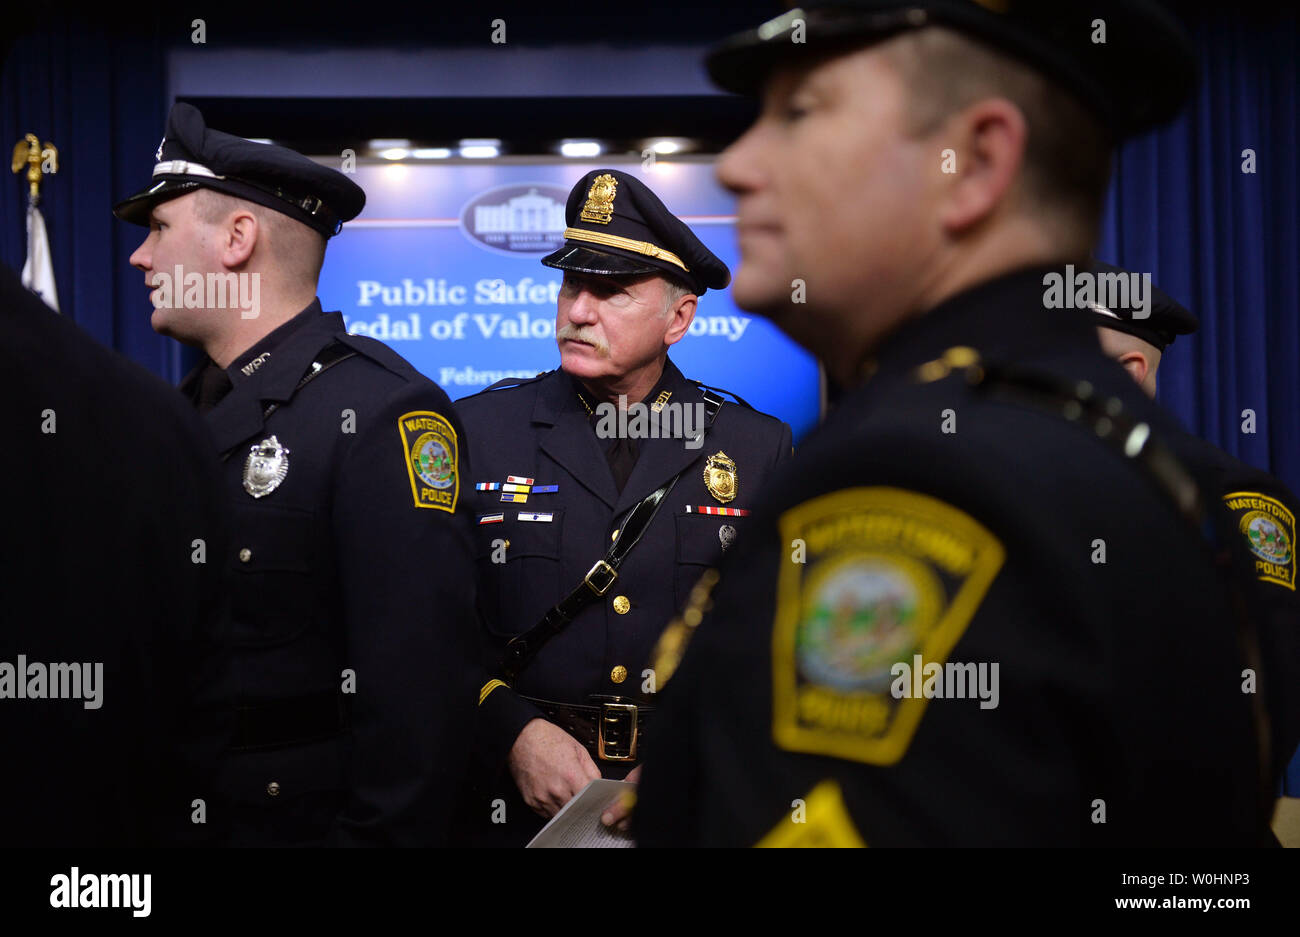 Watertown Photo Stock Photos & Watertown Photo Stock Images - Alamy